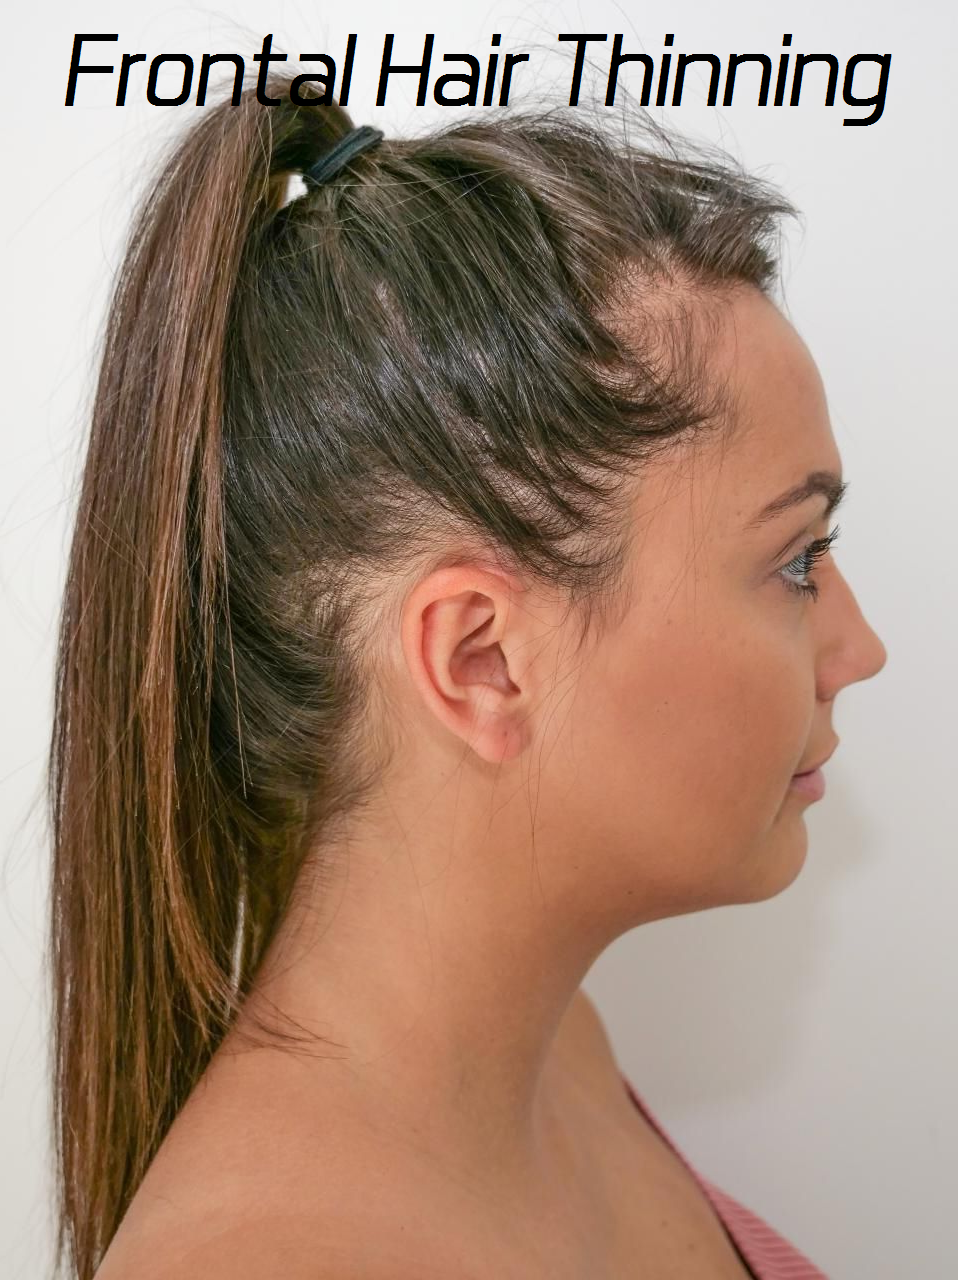 frontal hair thinning